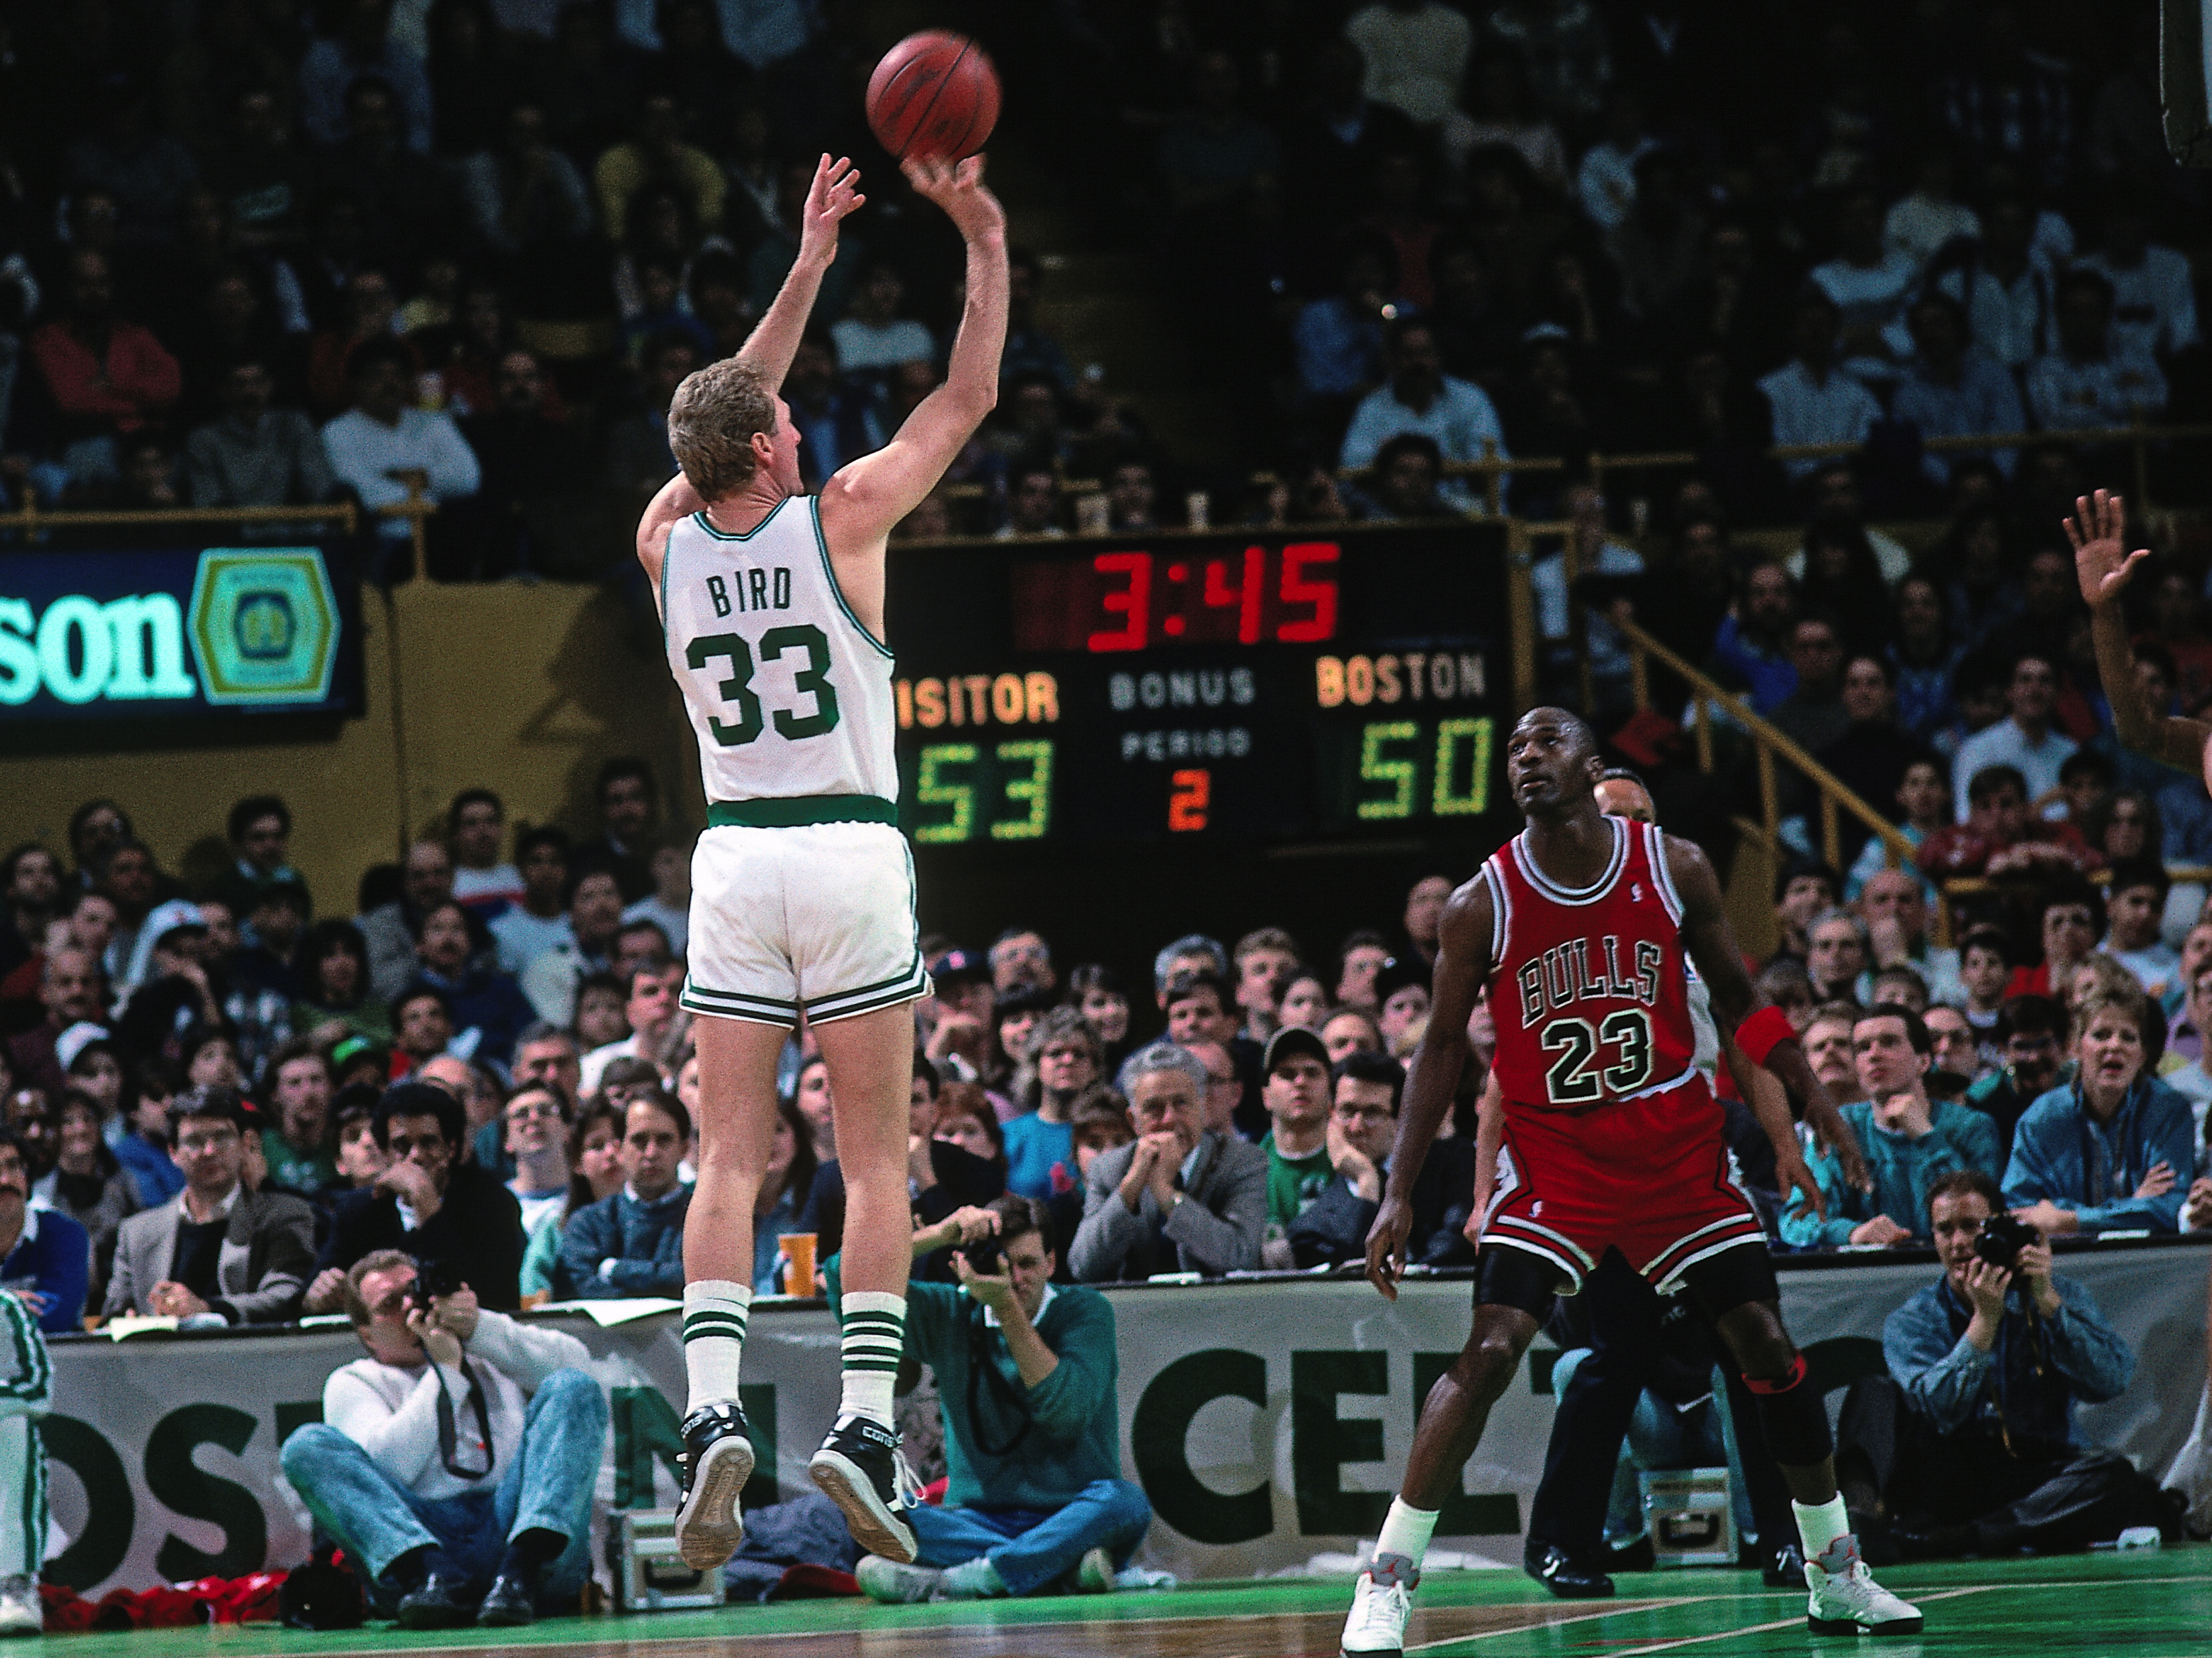 Larry Bird of the Boston Celtics shoots against Michael Jordan of the Chicago Bulls during a game in 1990 at the Boston Garden in Boston.